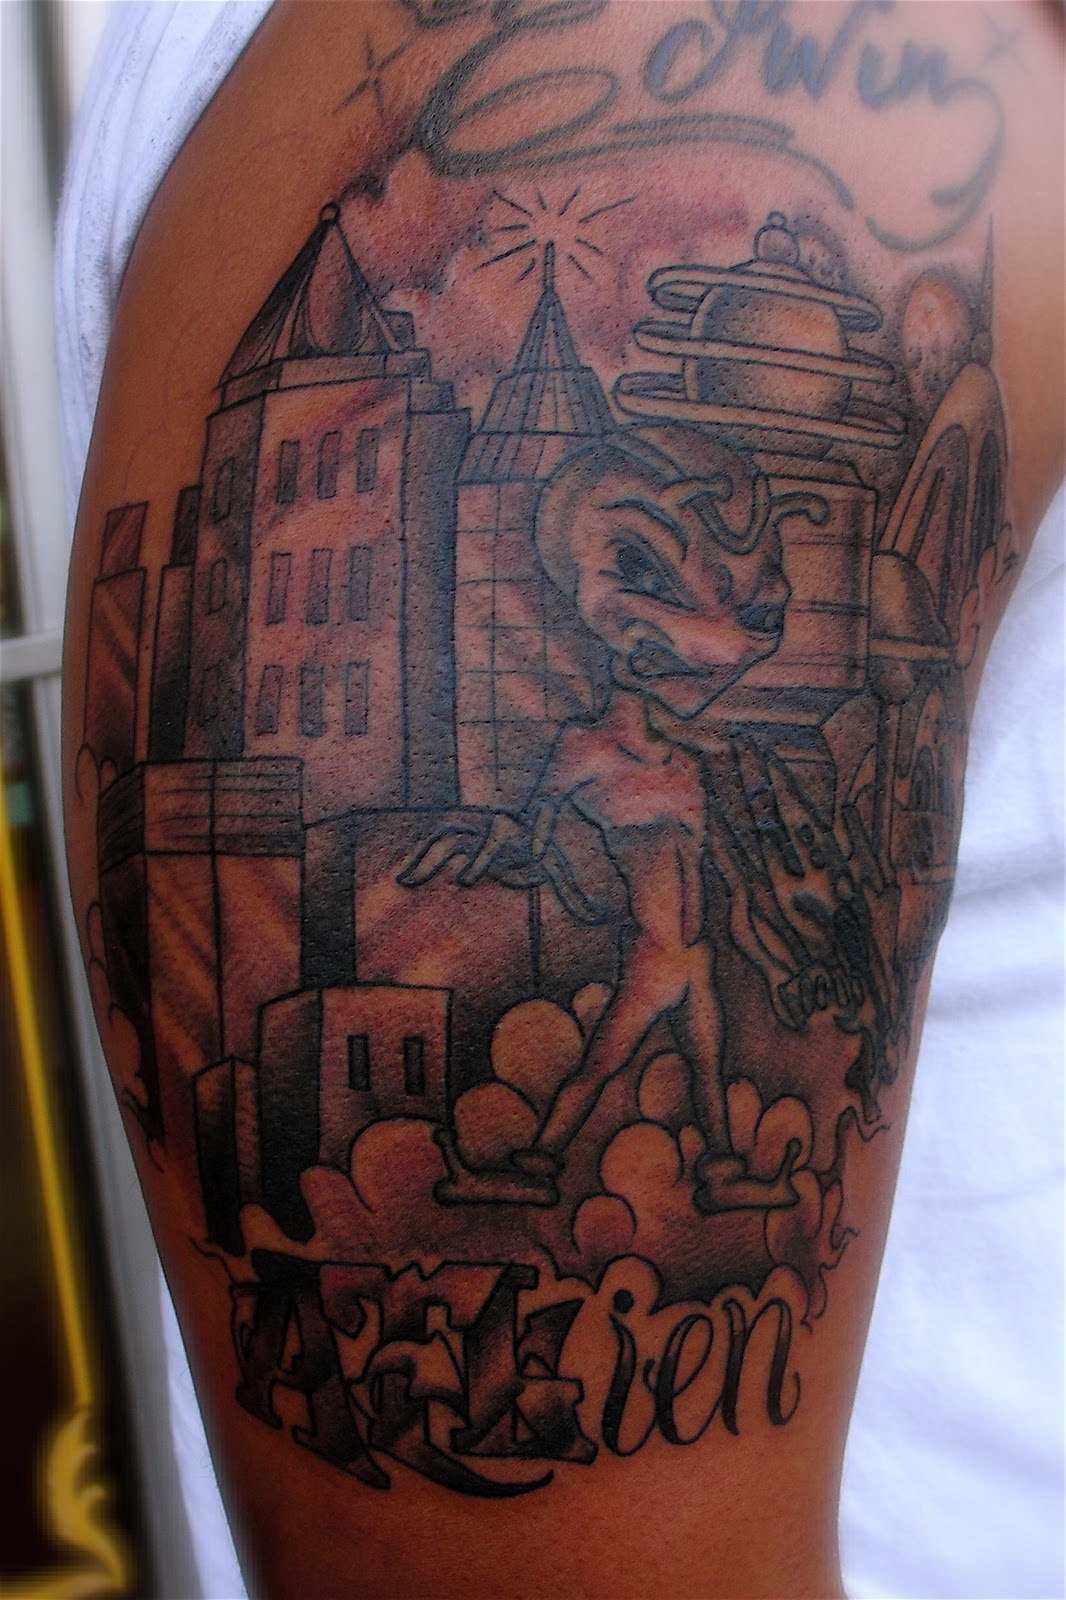 Liberty Tattoo Atlanta 11 21 10 11 28 10 Ideas And Designs